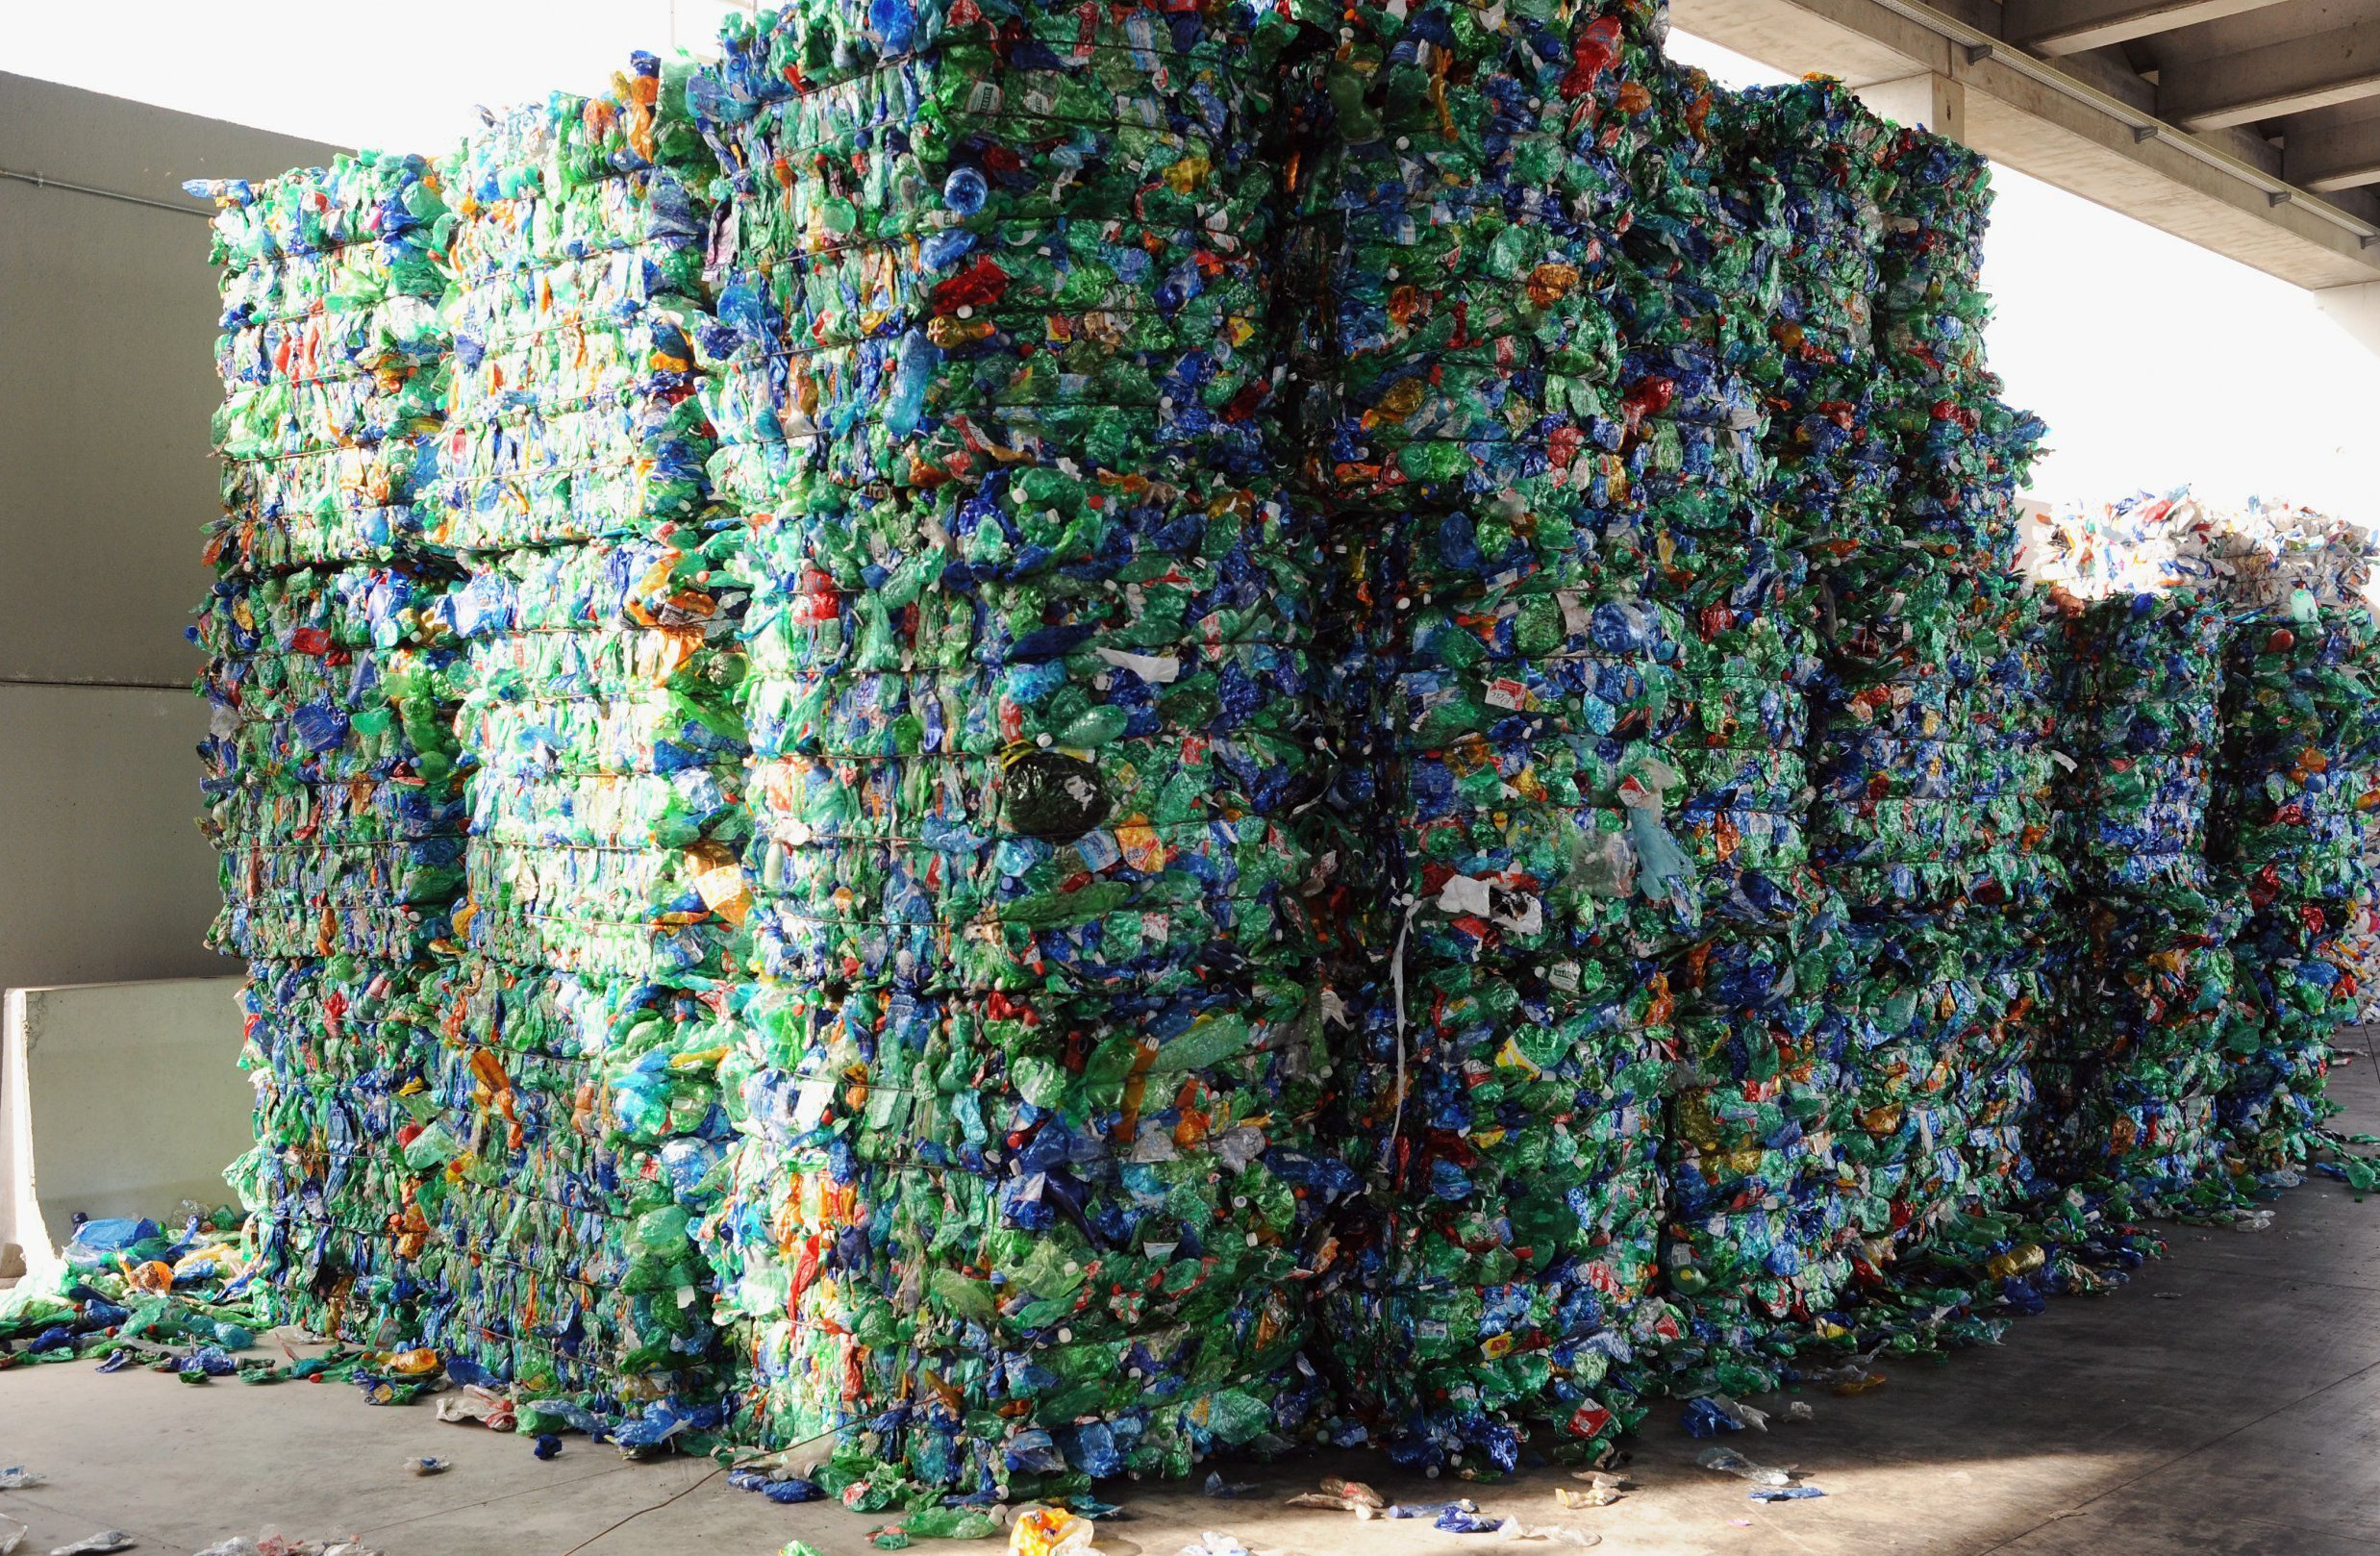 LIVORNO, ITALY - MAY 24: A view of bales of materials of colored plastic bottles ready to be recycled including the plastic waste collected by the fishermen during the operations of 'Arcipelago Pulito' project in the Tyrrhenian Sea is dispalyed in the company Revet Recycling on May 24, 2018 in Pontedera near Pisa, Italy. As part of the ' Arcipelago Pulito ' project in Tuscany, fisherman bring ashore the plastic they have collected on their fishing trips for recycling at a specialised plant. The project is the result of an agreement between the Tuscan Region, the Ministry of the Environment, Unicoop Firenze and Revet Recycling with the total supervision of the Coast Guard of Tuscany. About 10% of the volume of each fish haul caught is plastic waste. (Photo by Laura Lezza/Getty Images)